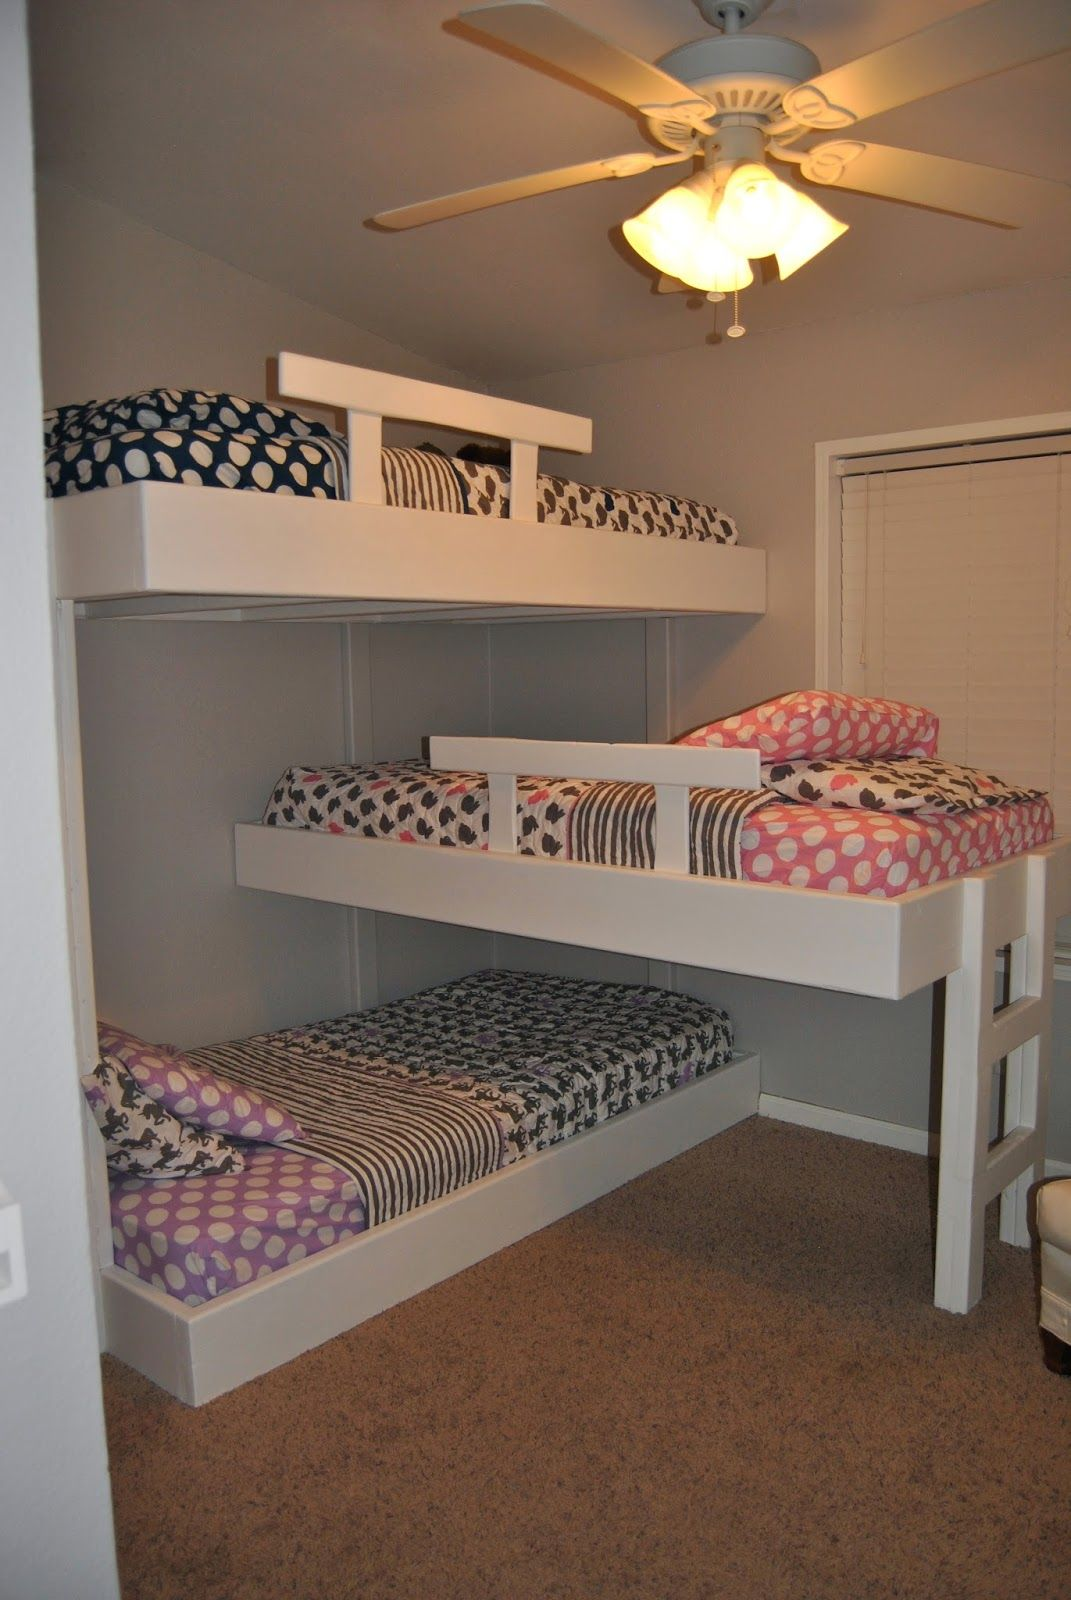 Small Bedroom Bunk Beds life with mack, macy & molly : triple bunk beds | small bedroom